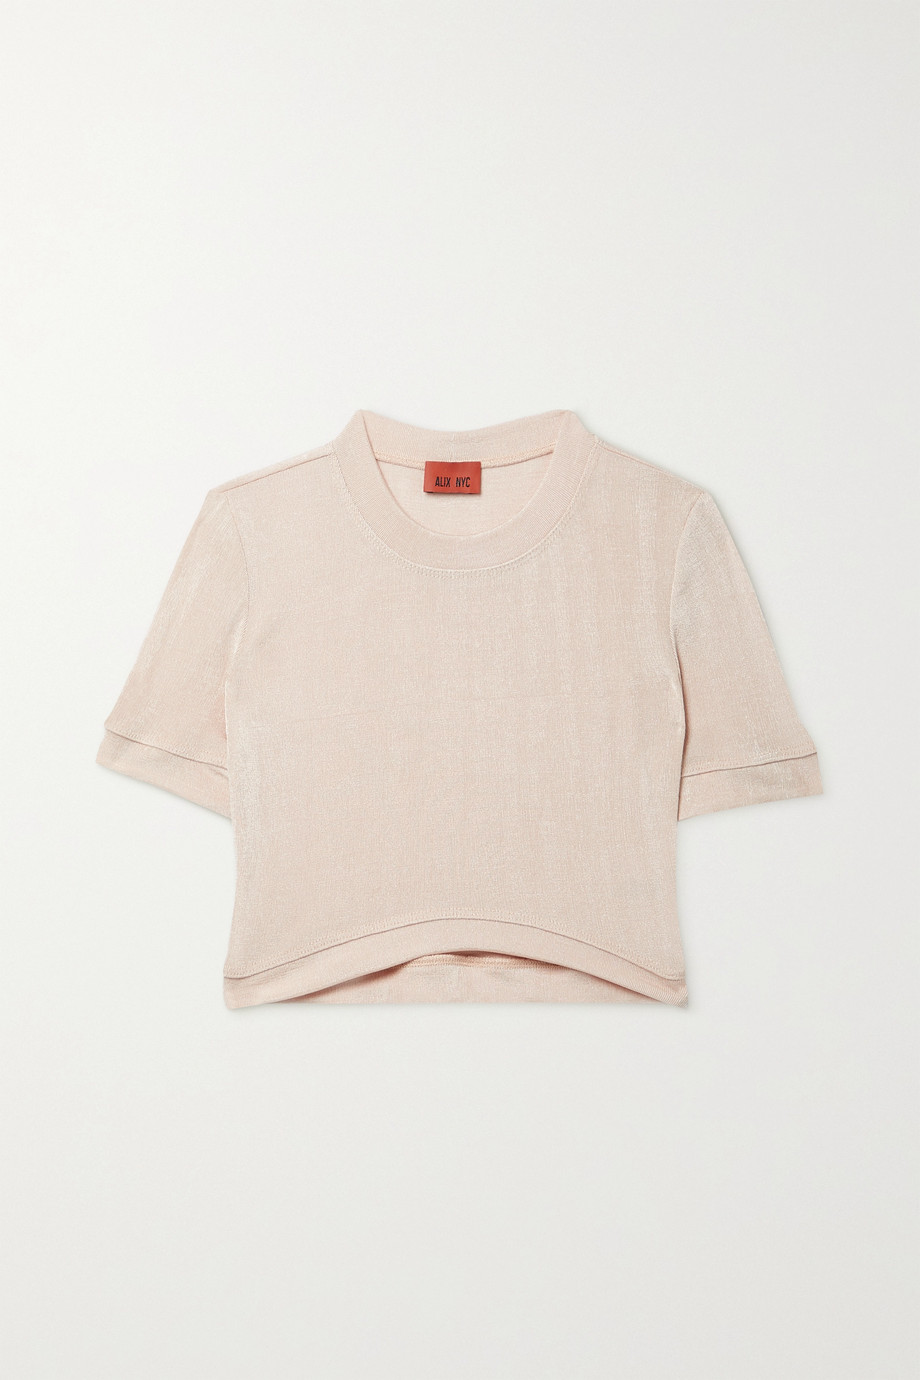 ALIX NYC James cropped stretch-knit T-shirt